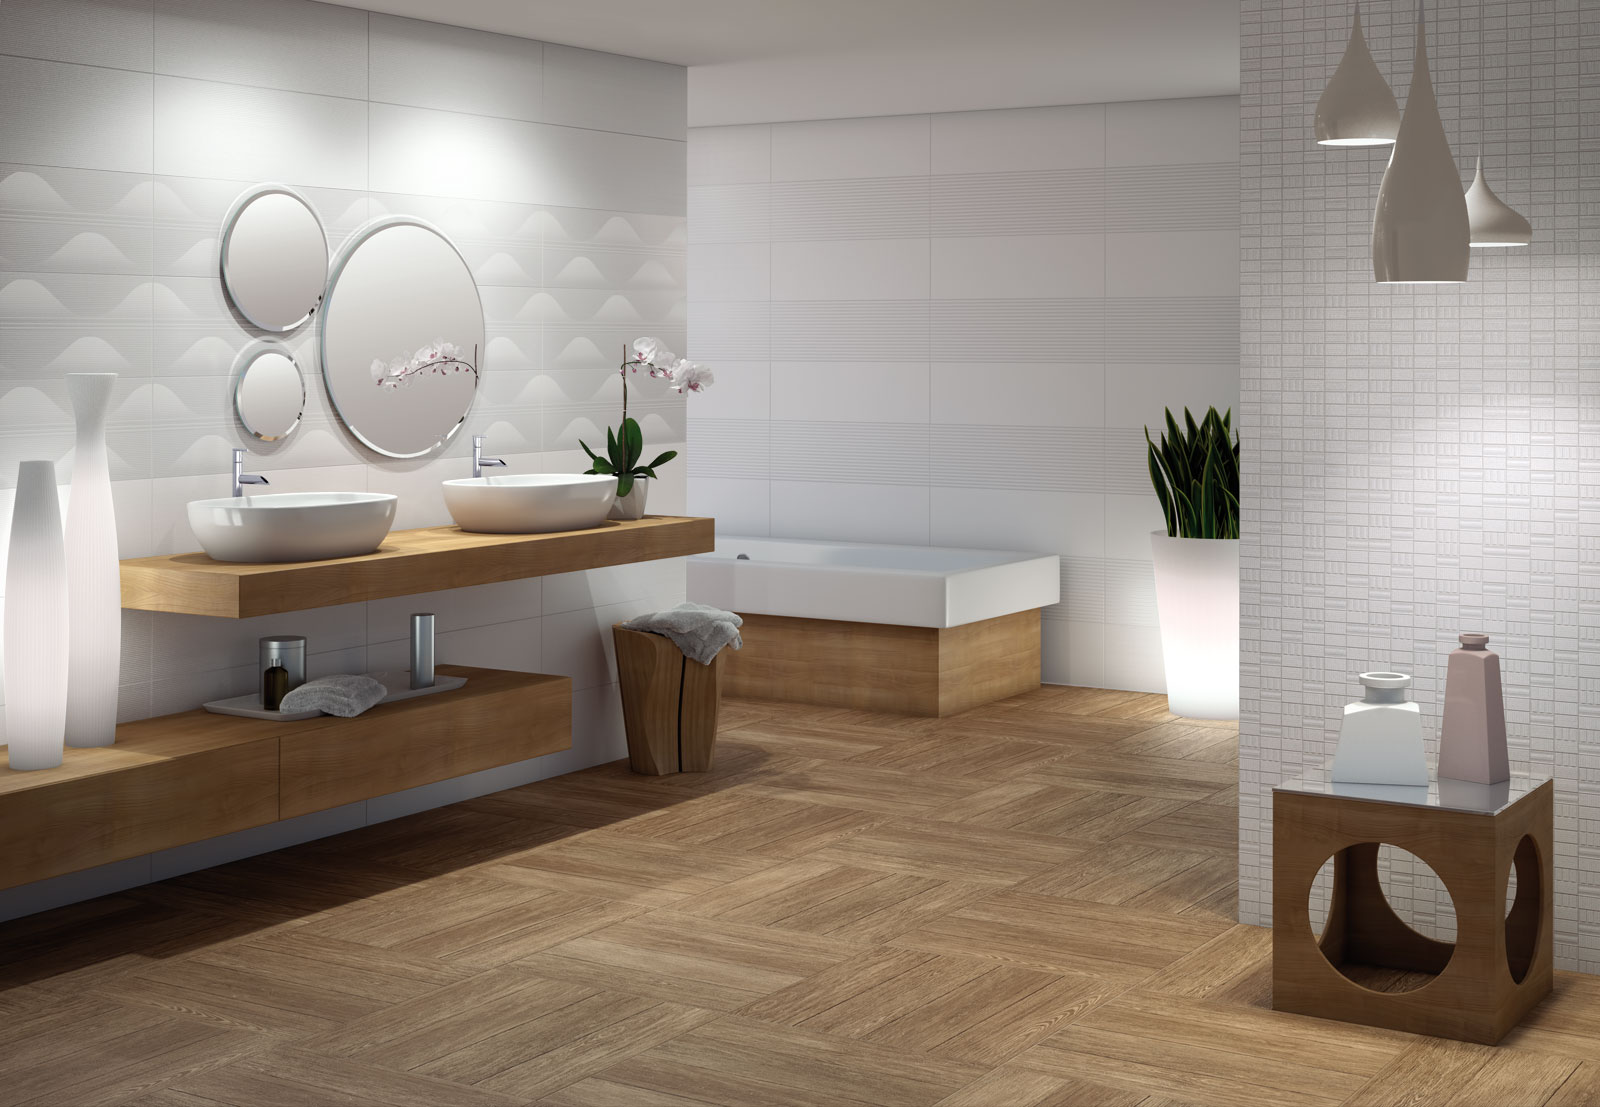 Verano spa and bathroom porcelain stoneware marazzi for Salle de bain style spa